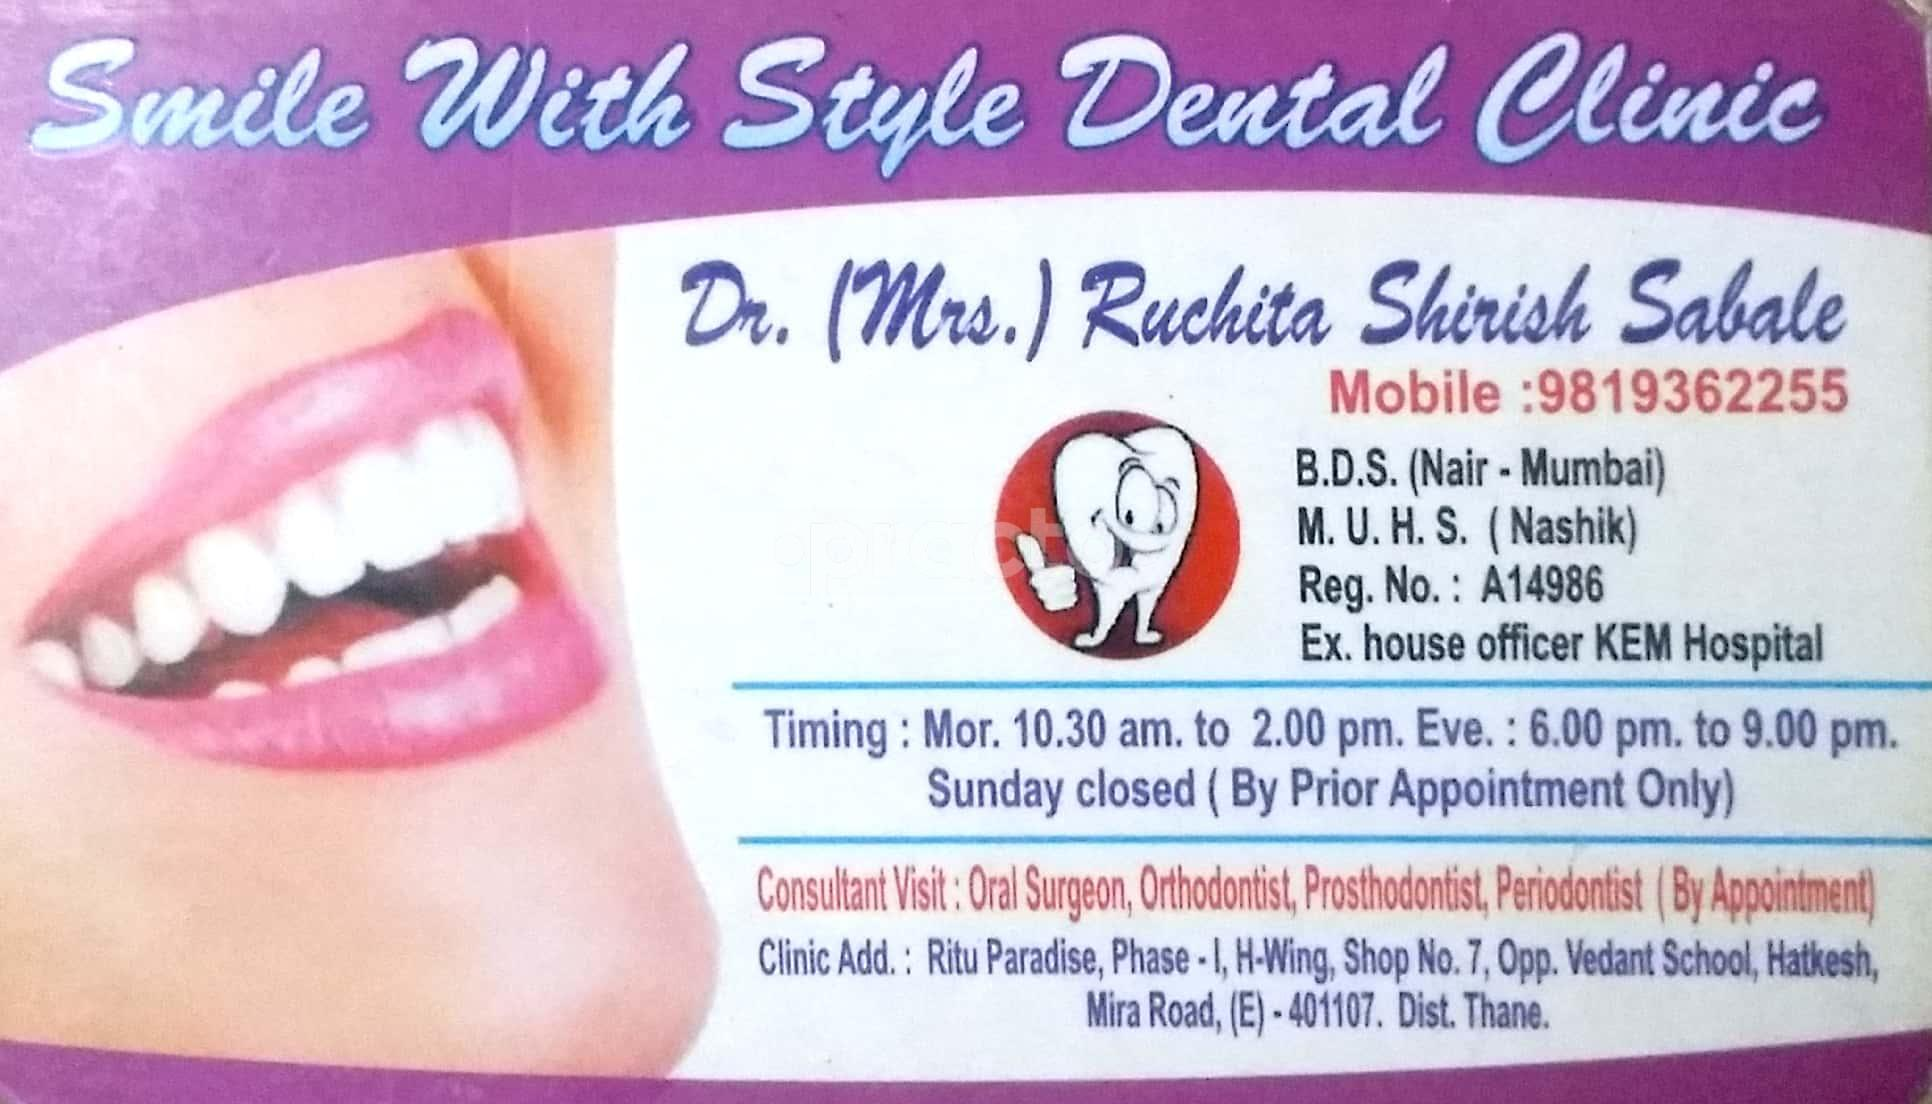 Smile with Style Dental Clinic